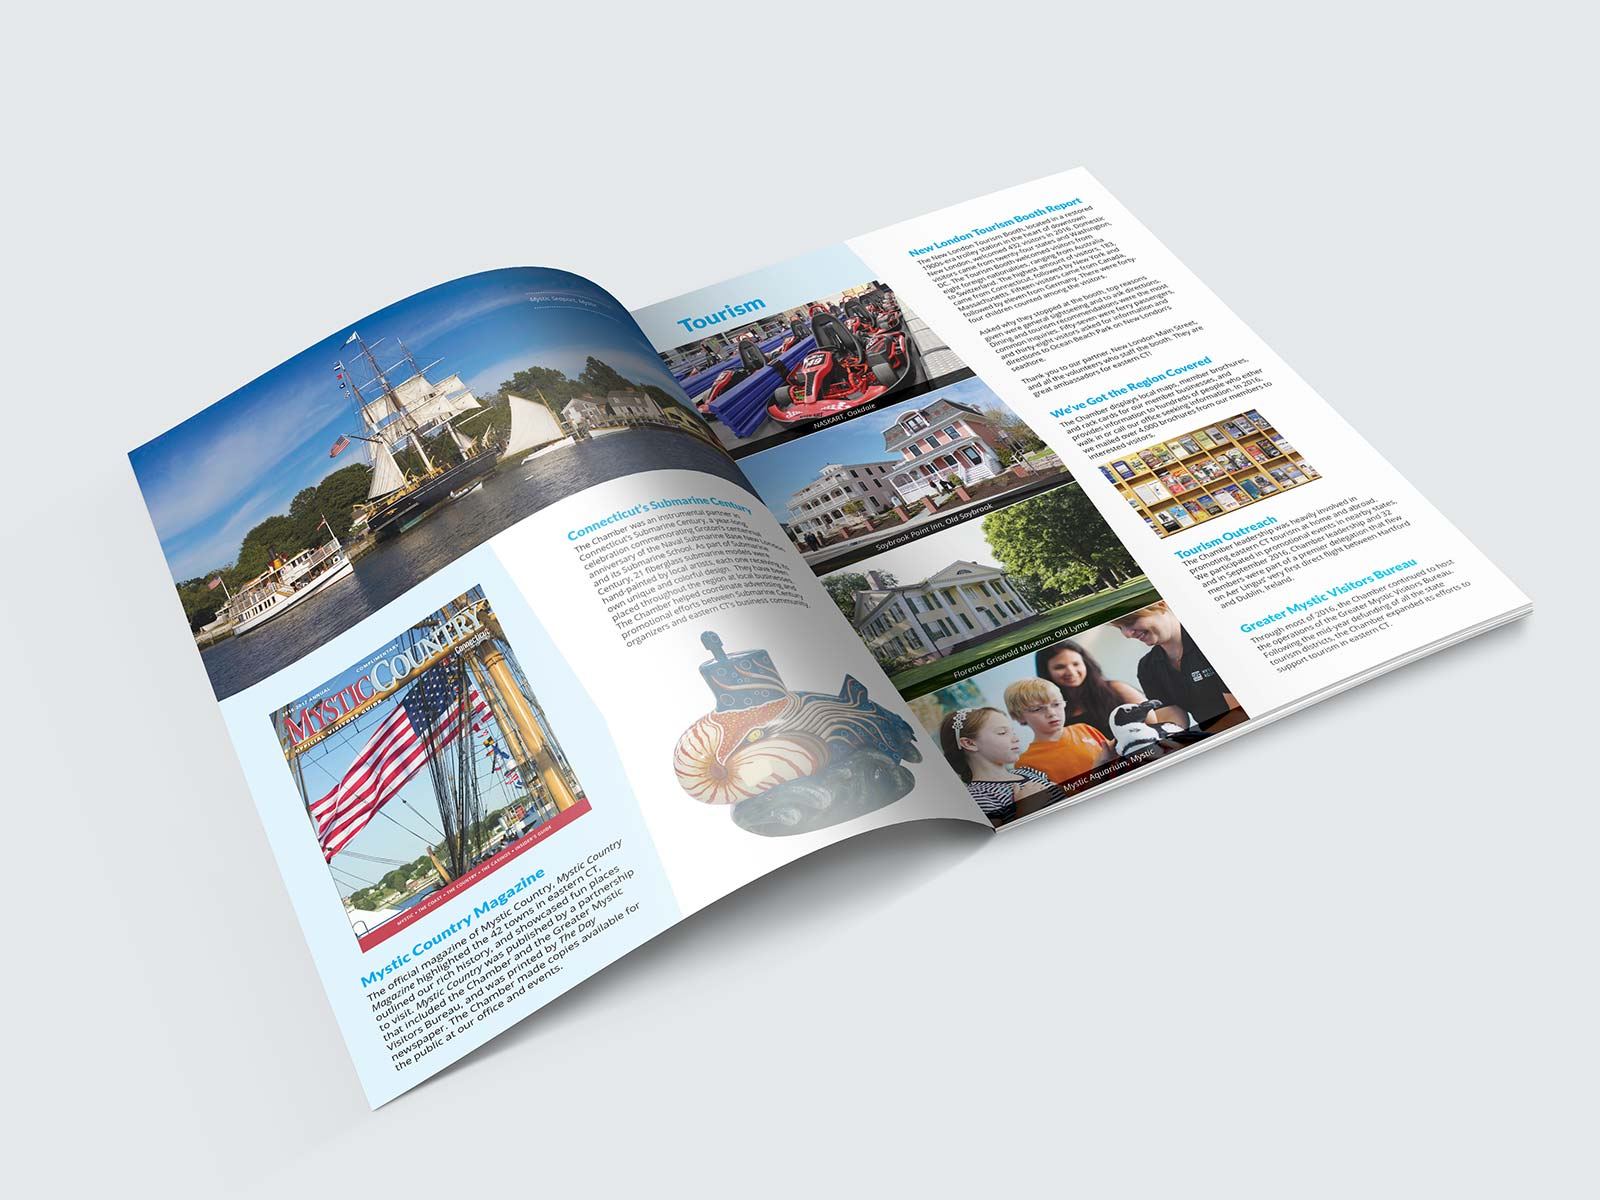 Magazine spread with tourism design